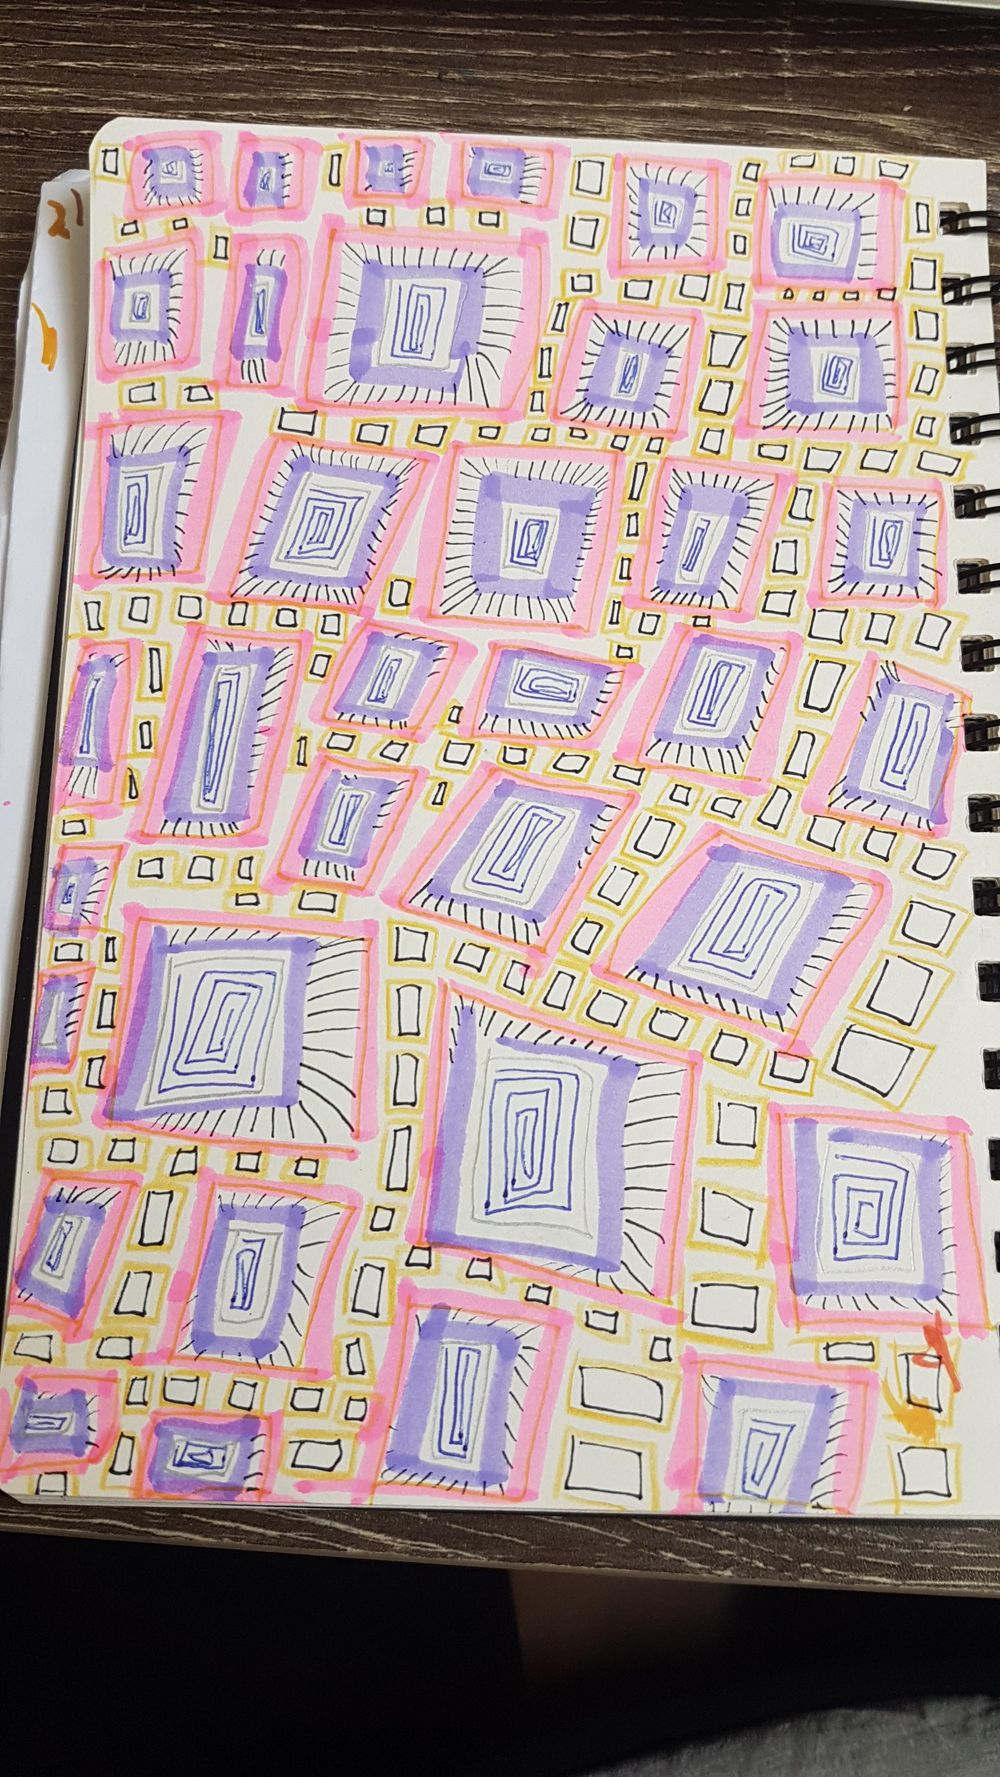 training to doodle - image 1 - student project